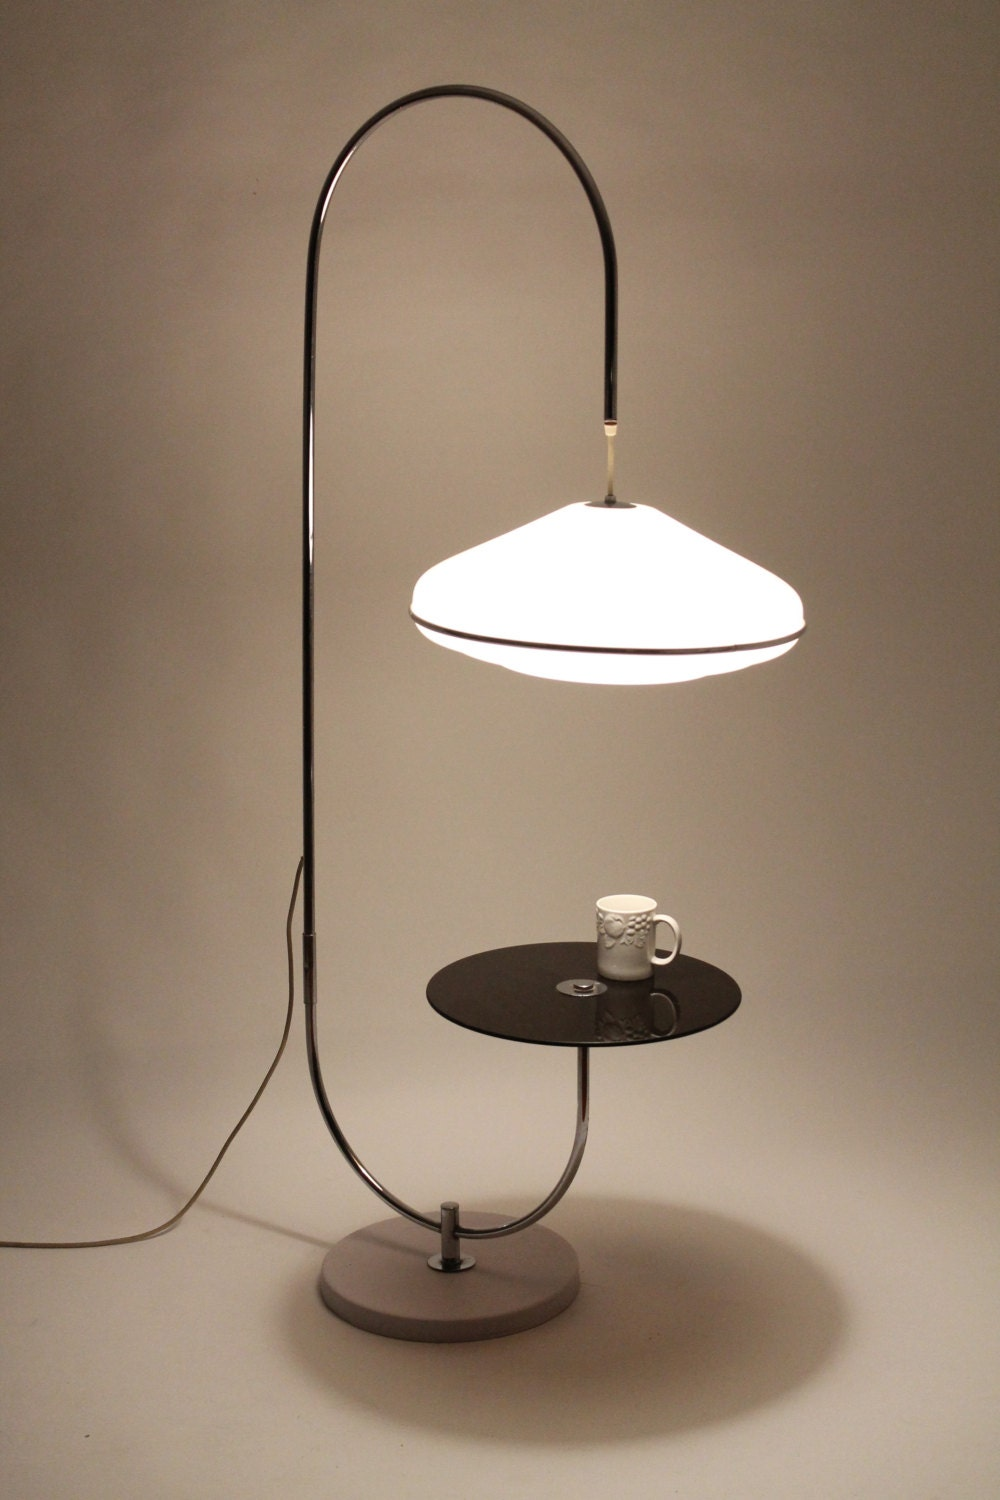 Unique table lamp minimalist modern vintage mid century 1970 - Contemporary table lamps design ideas ...